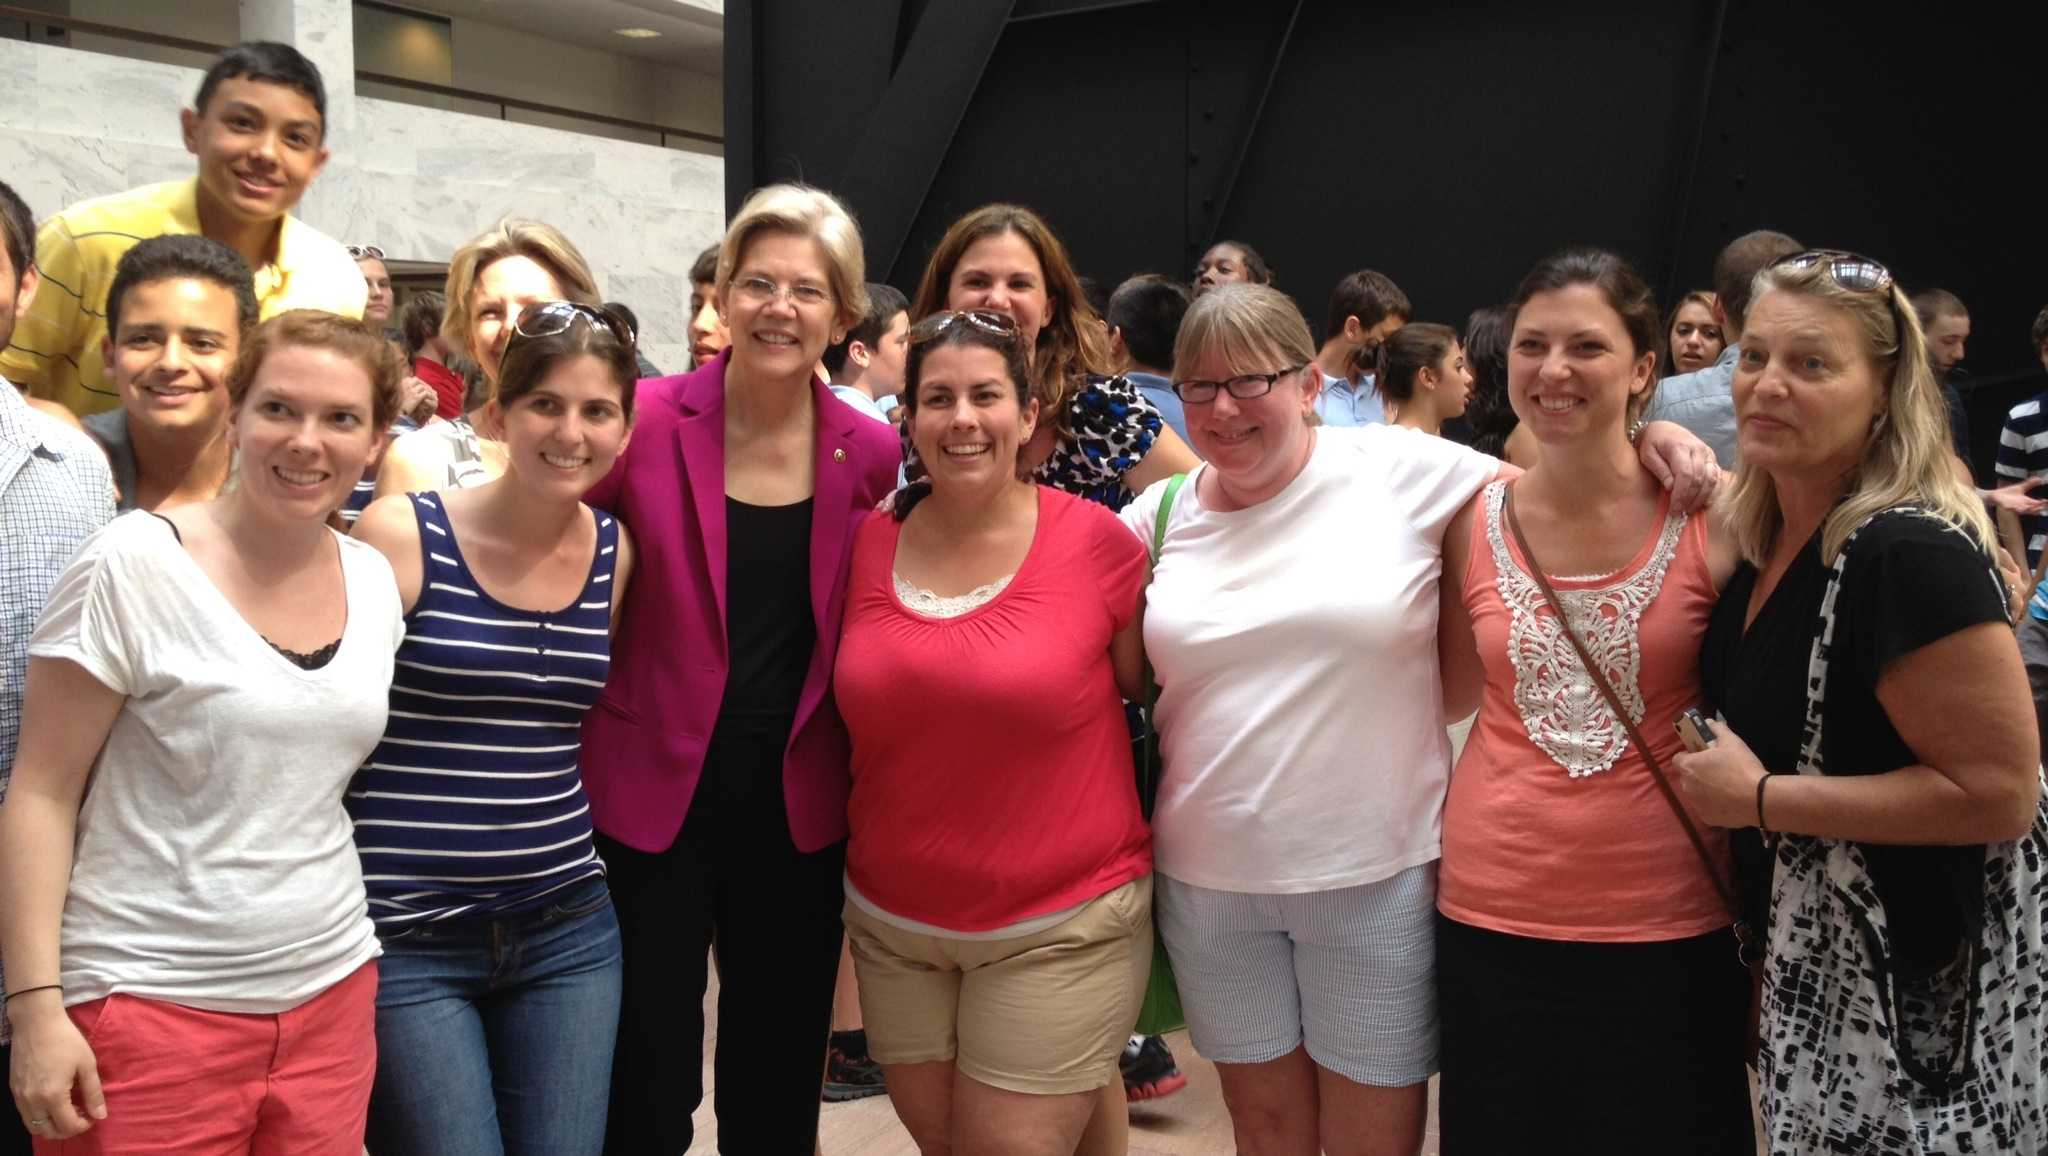 Senator Elizabeth Warren (third from left in pink blazer) met with Watertown Middle School teachers and students during the 2013 trip to Washington, D.C.